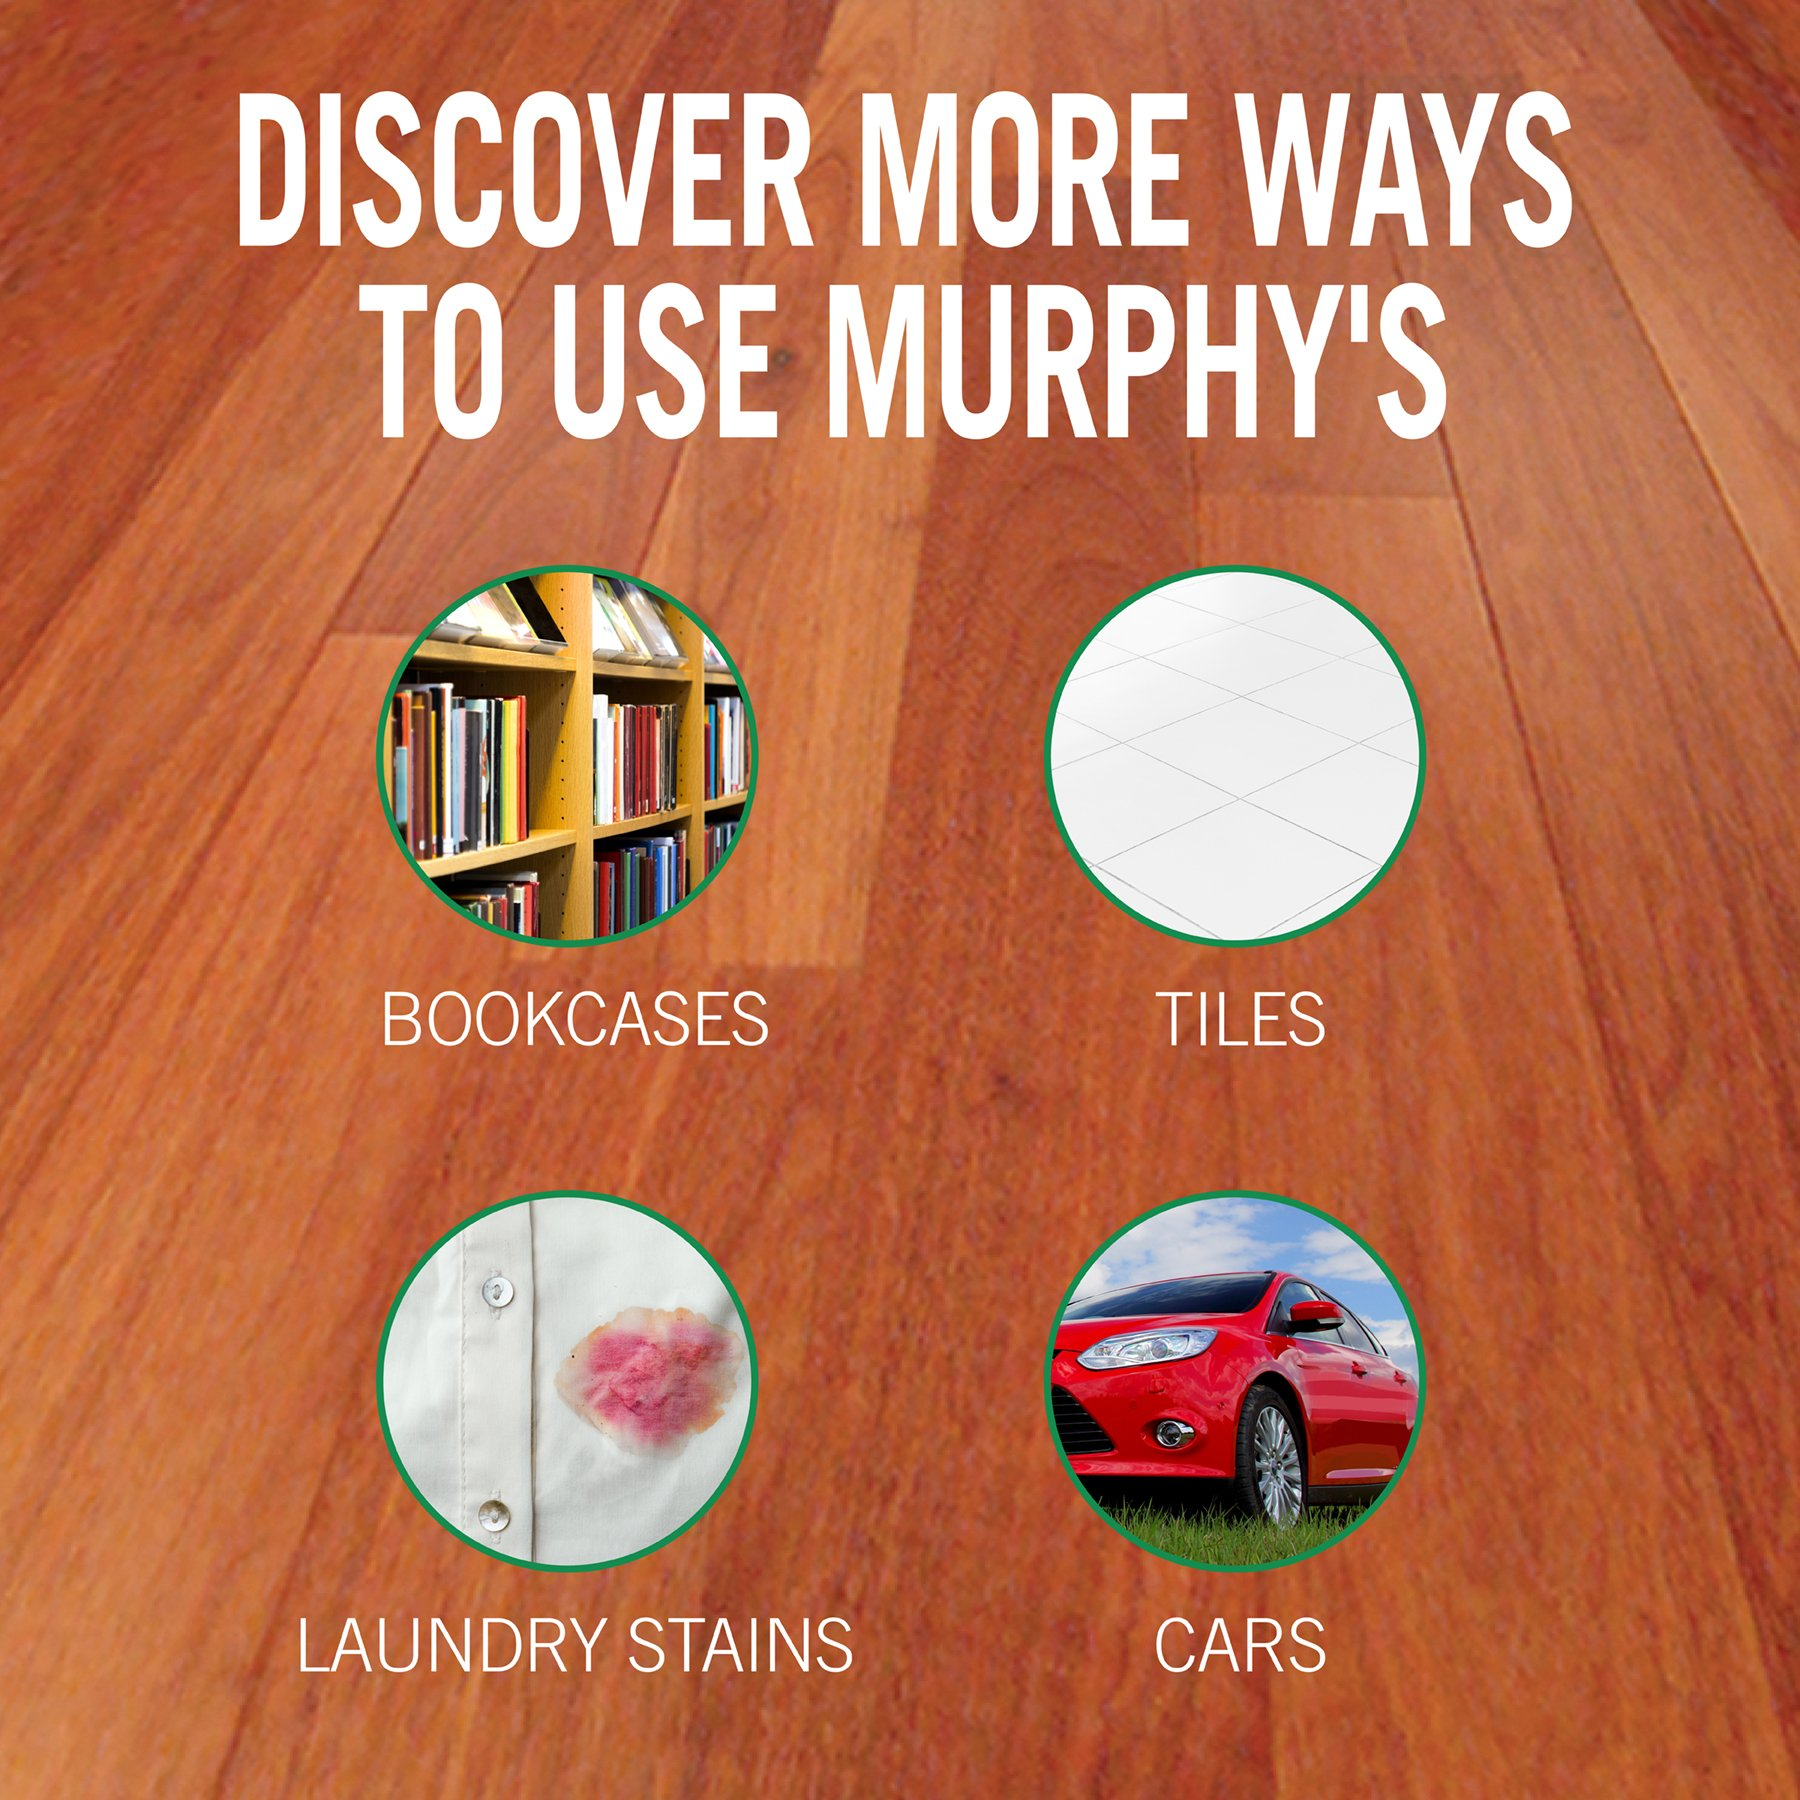 MURPHY OIL SOAP Wood Cleaner, Original, Concentrated Formula, Floor Cleaner, Multi-Use Wood Cleaner, Finished Surface Cleaner, 128 Fluid Ounce (US05480A) by Murphy Oil (Image #7)